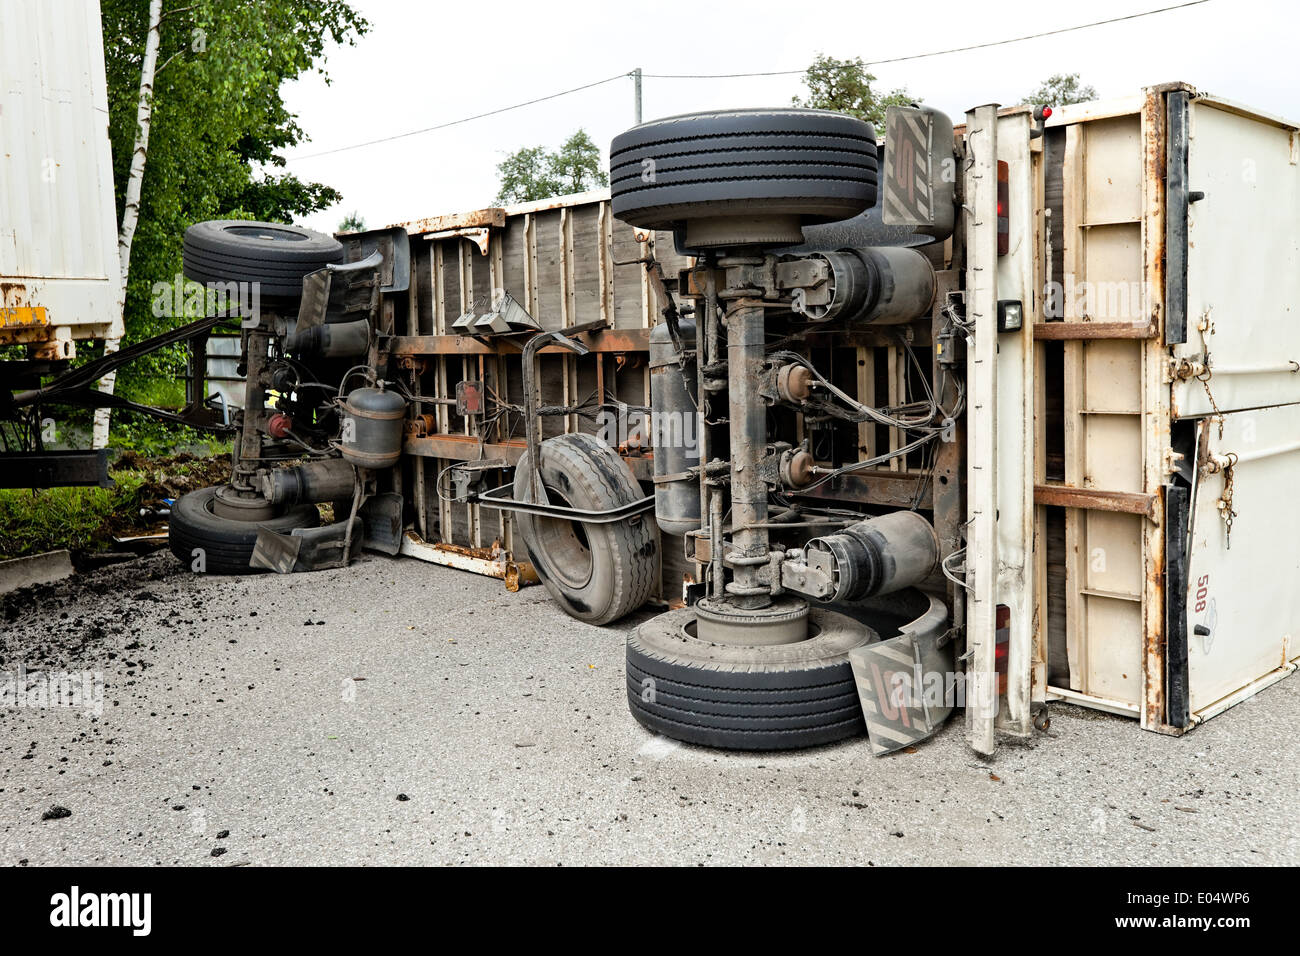 Unfall Accident Stock Photos & Unfall Accident Stock Images - Alamy